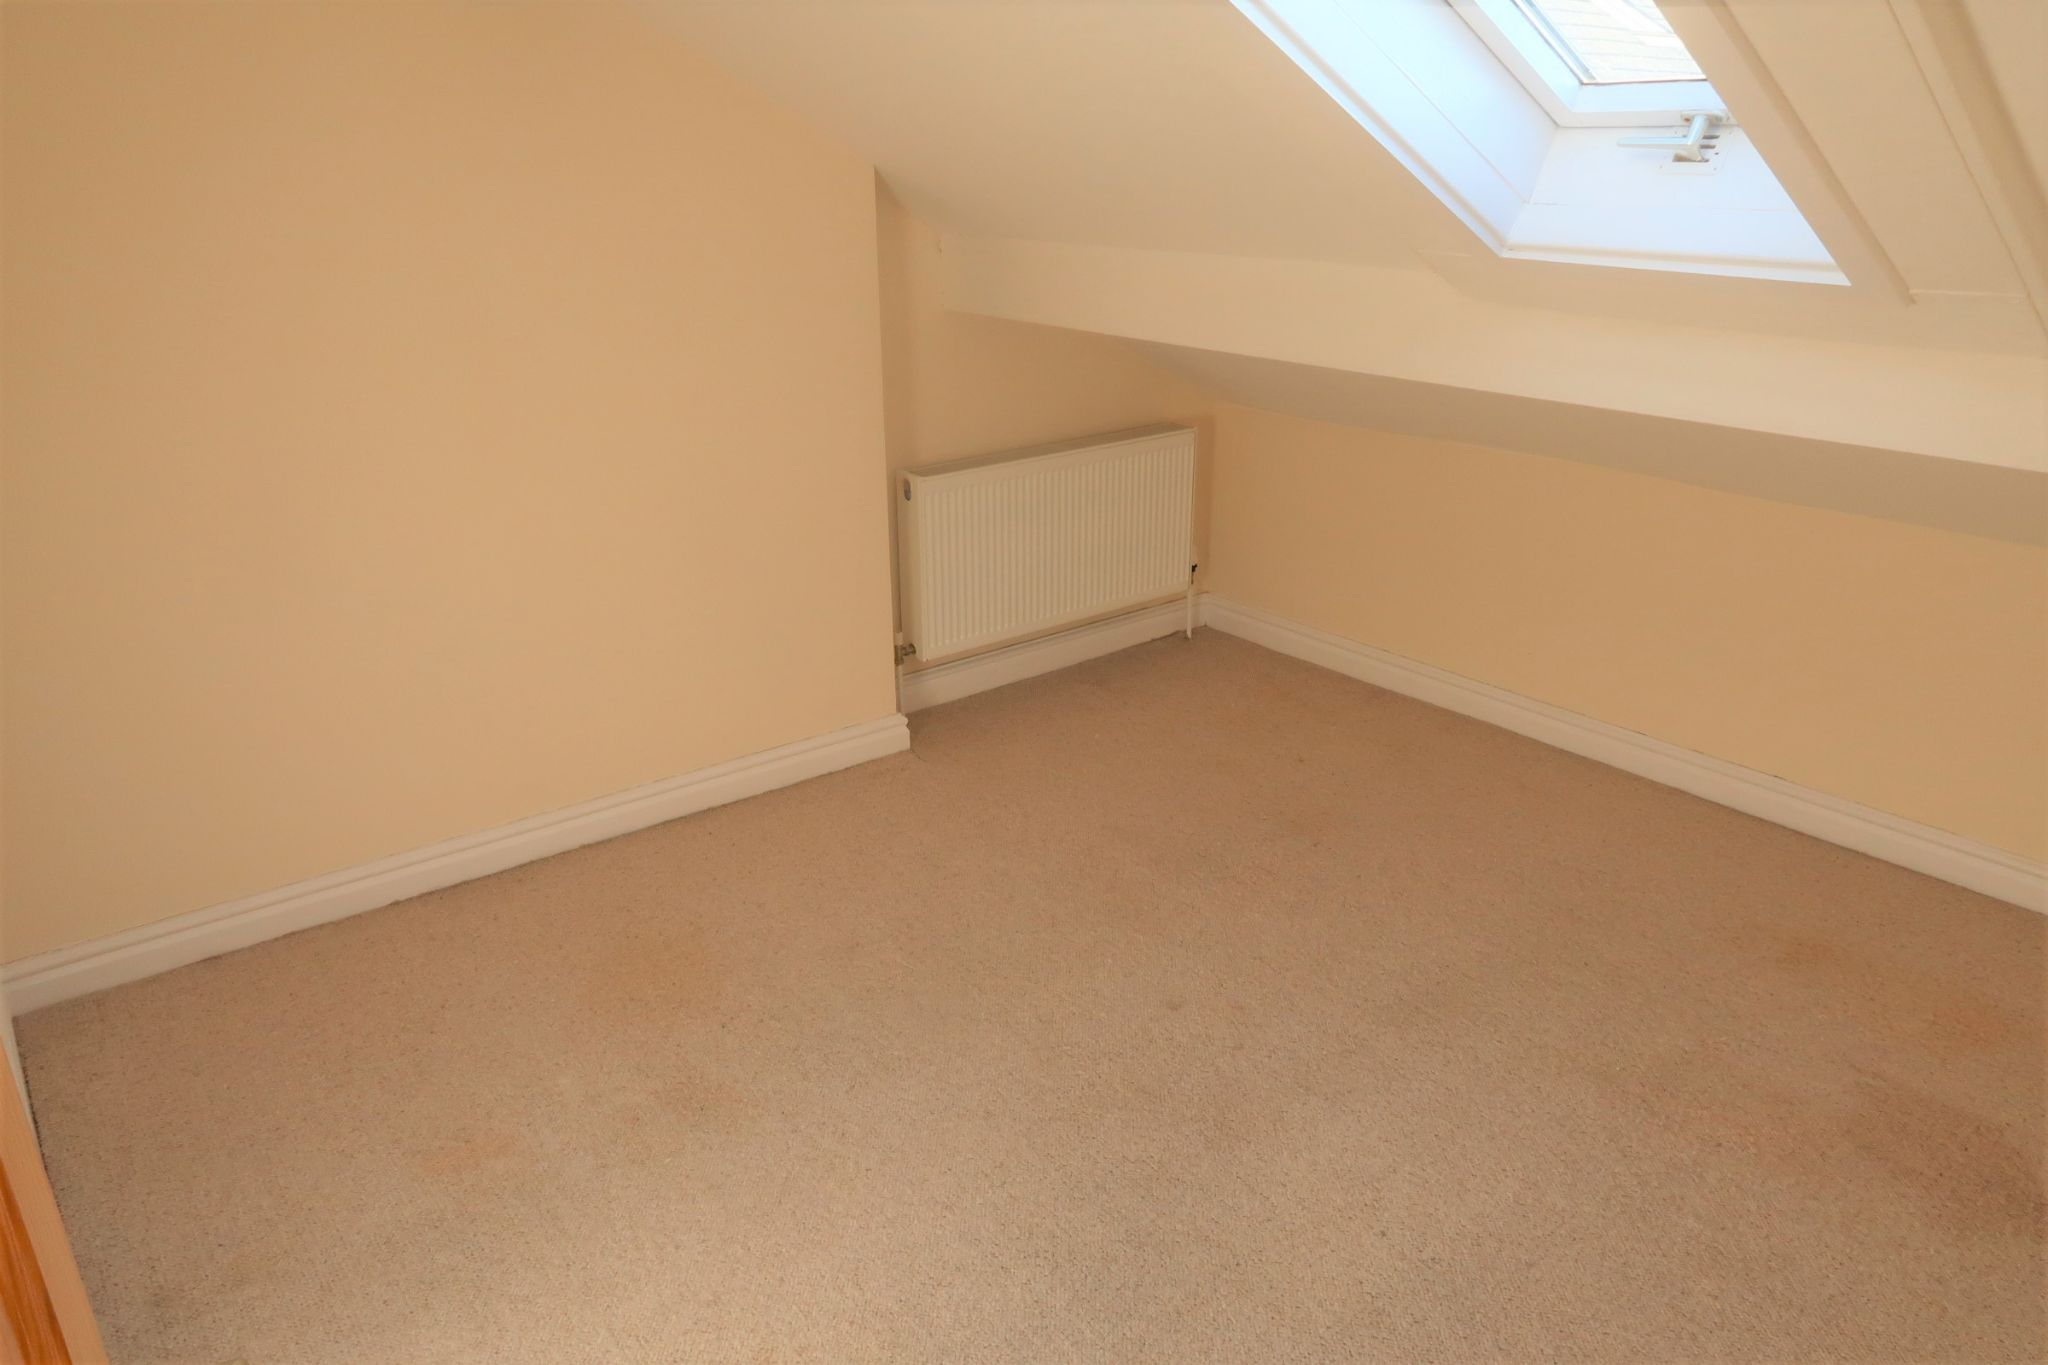 3 bedroom end terraced house Let Agreed in Castletown - Property photograph